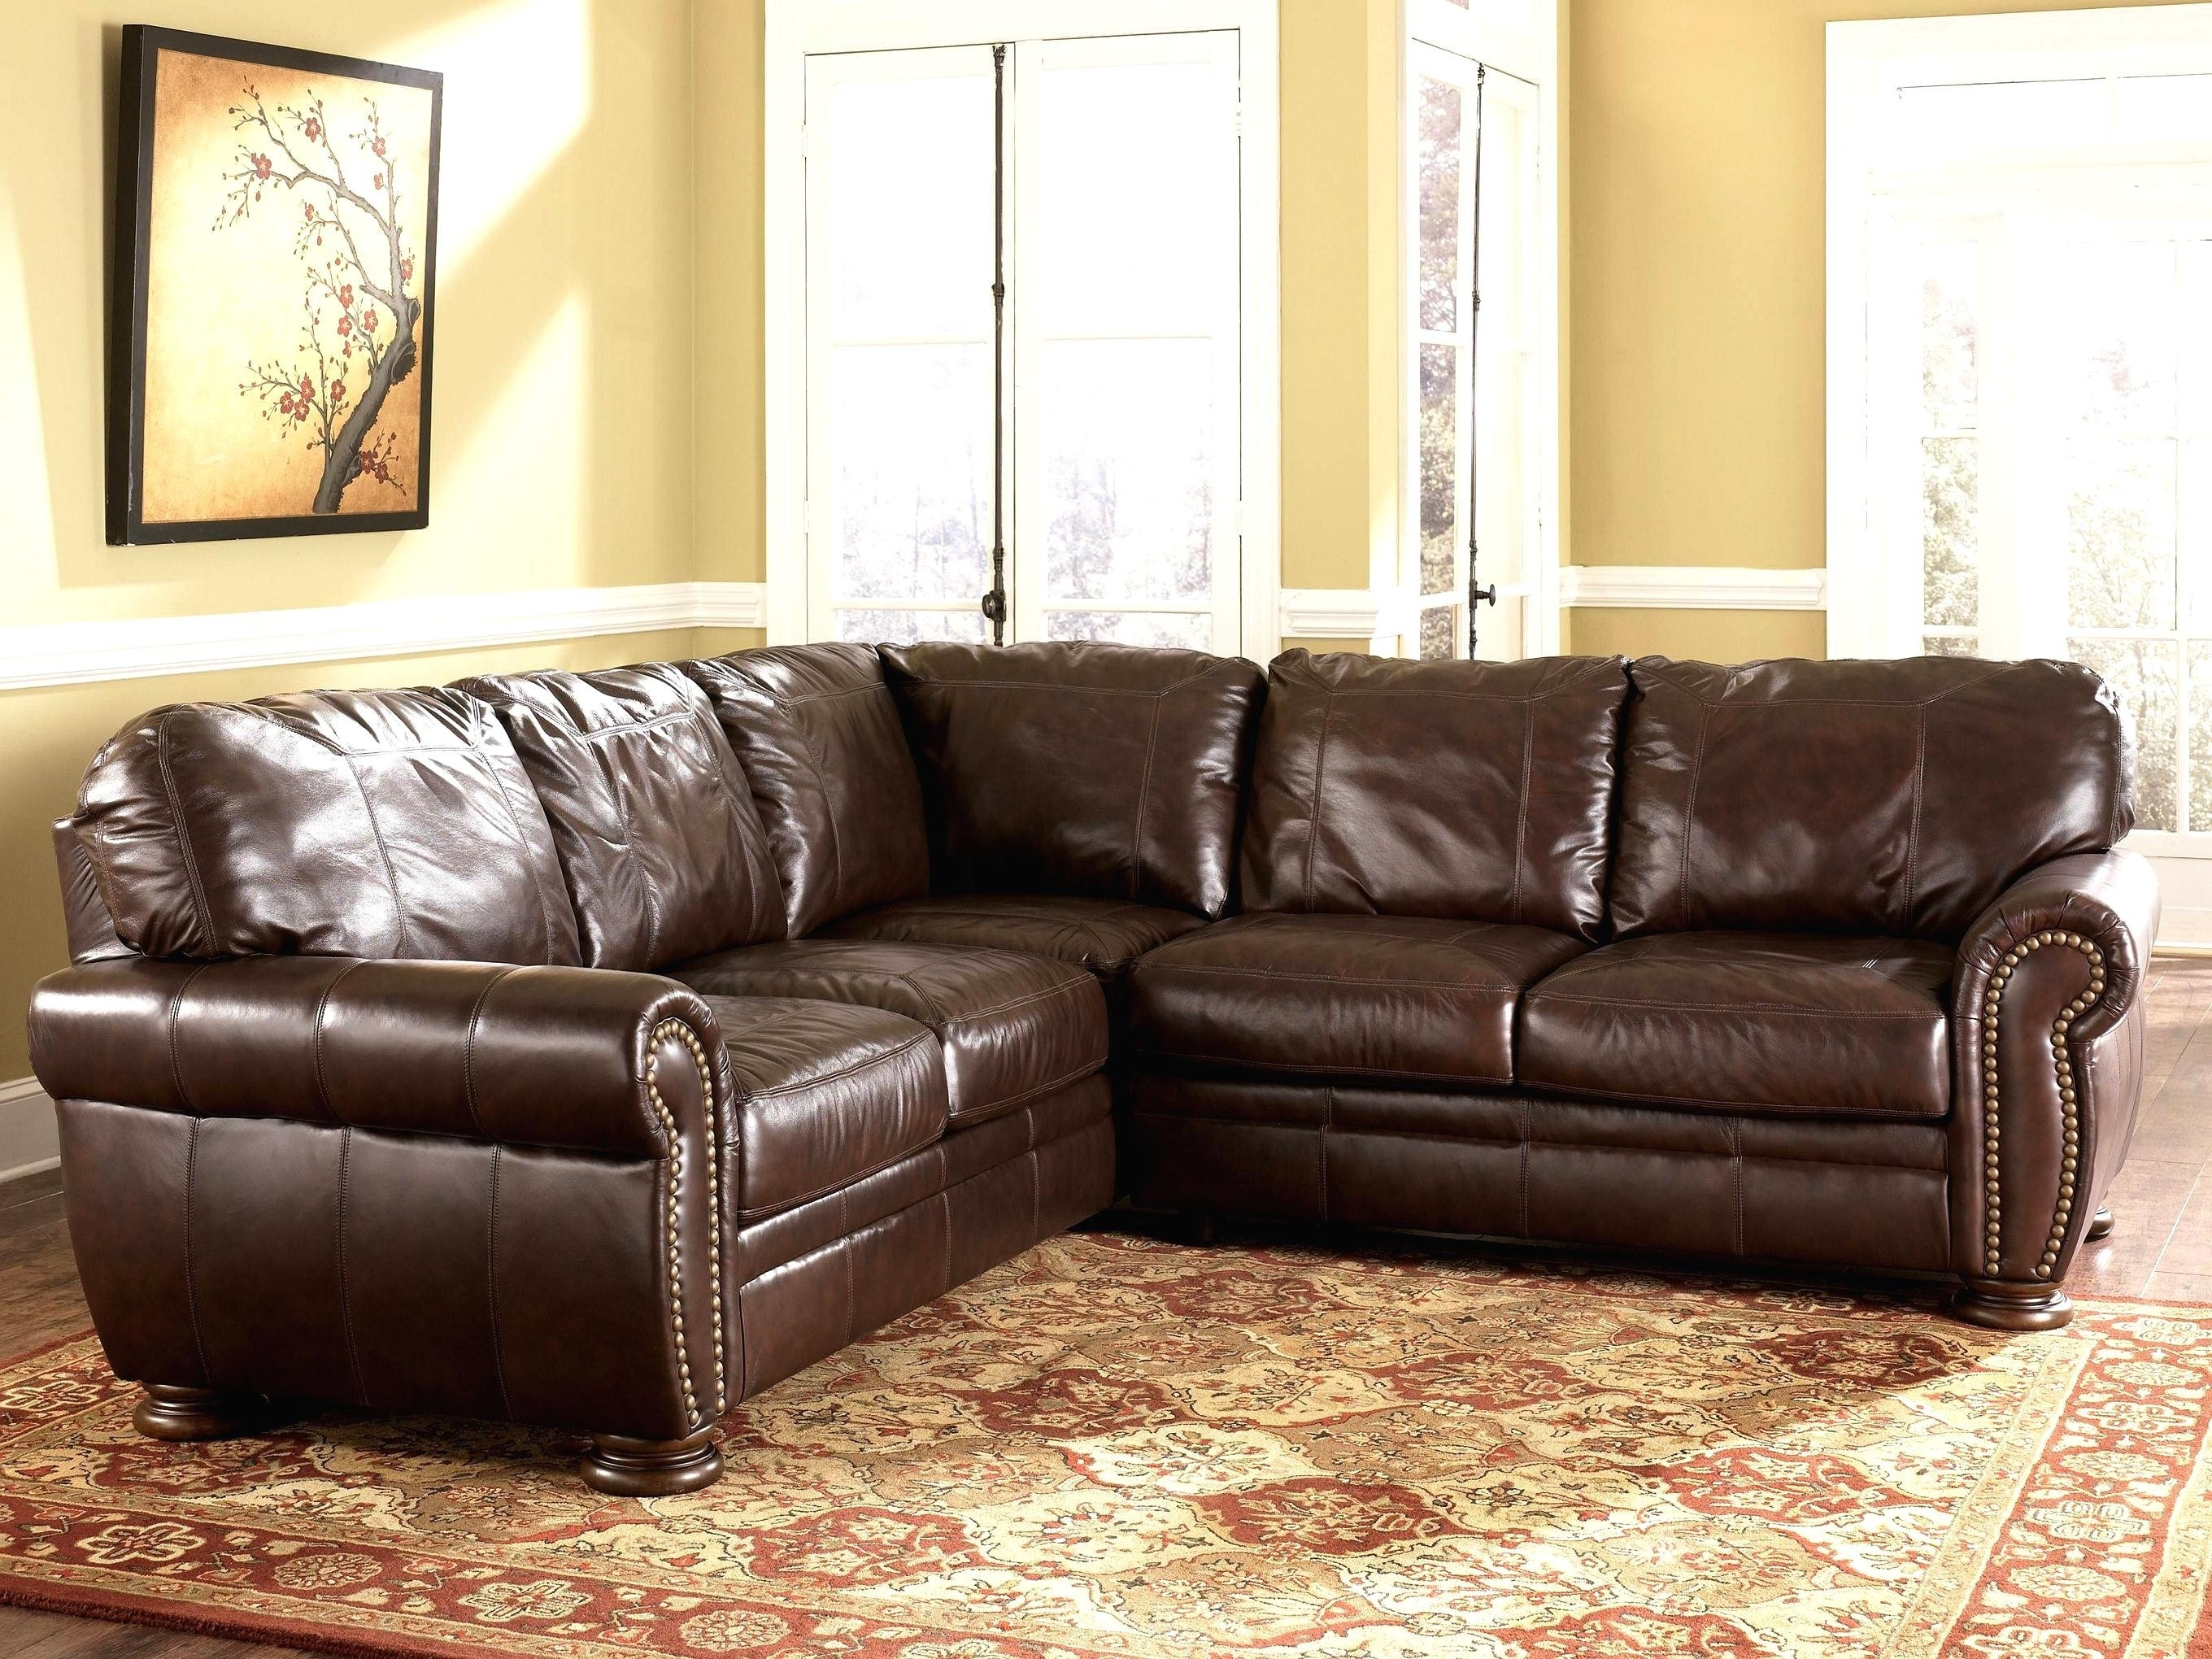 Used Sectional Sofas – Home Design Ideas And Pictures In Trendy Thomasville Sectional Sofas (View 12 of 20)